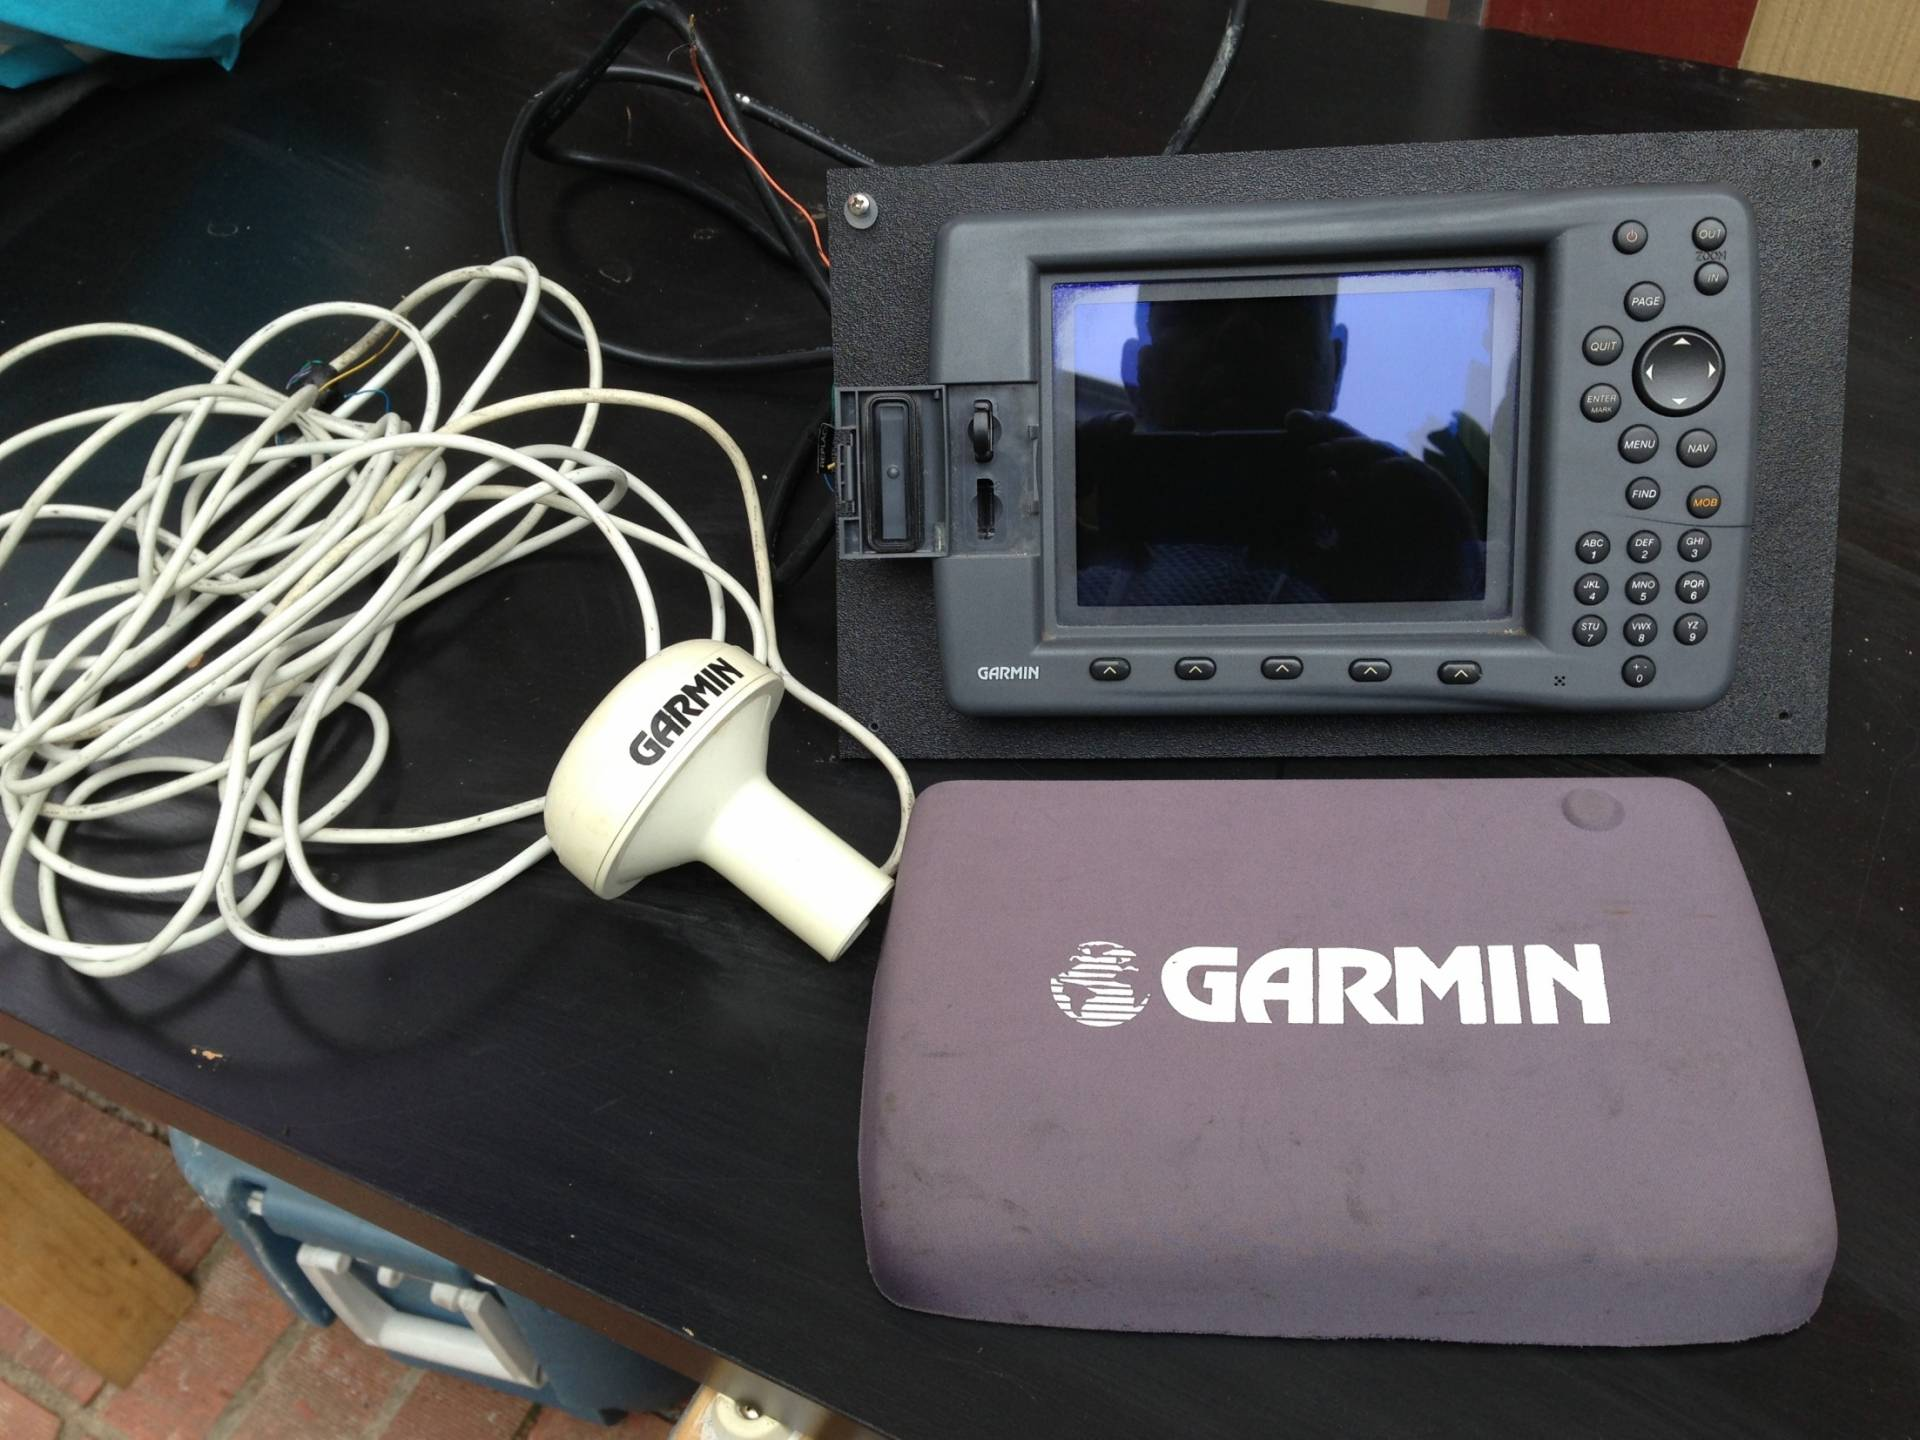 1013623_3058409605825d07c7dbf6079dfd409e for sale garmin gps 2006c color plotter, chart card and gps 17 Garmin GPS Wire Layout at eliteediting.co